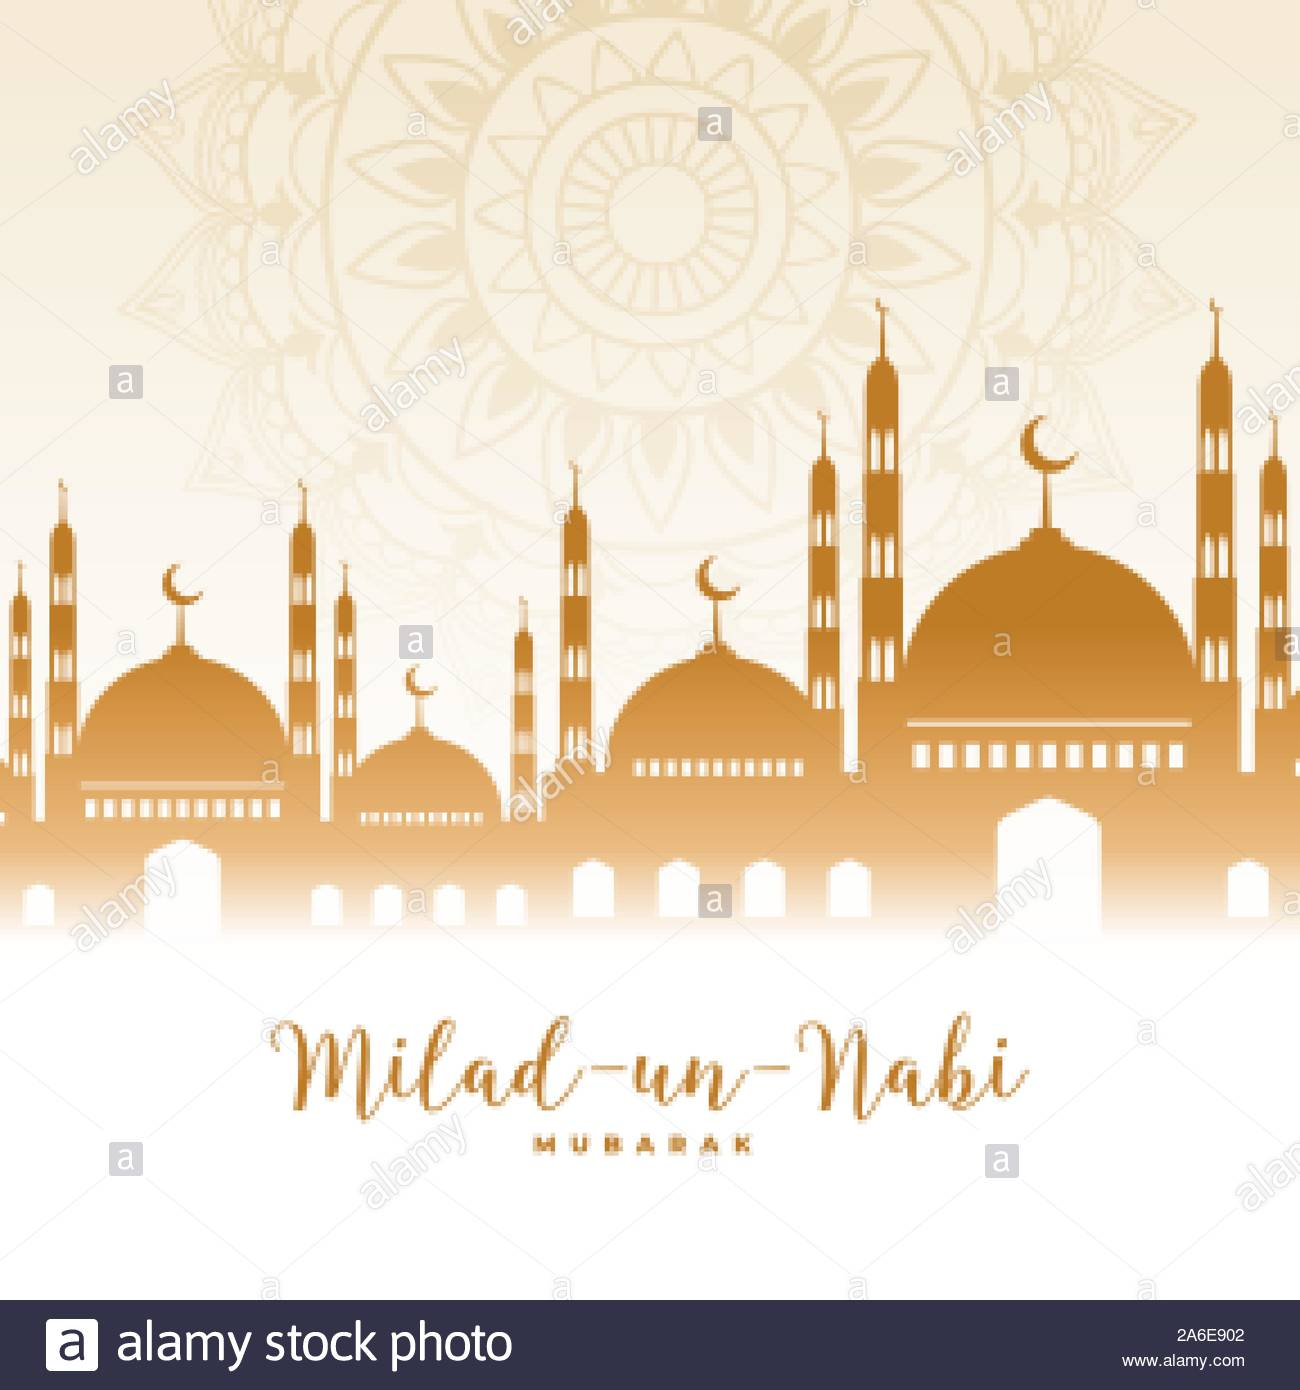 eid milad un nabi barawafat islamic festival background stock vector image art alamy https www alamy com eid milad un nabi barawafat islamic festival background image330999314 html